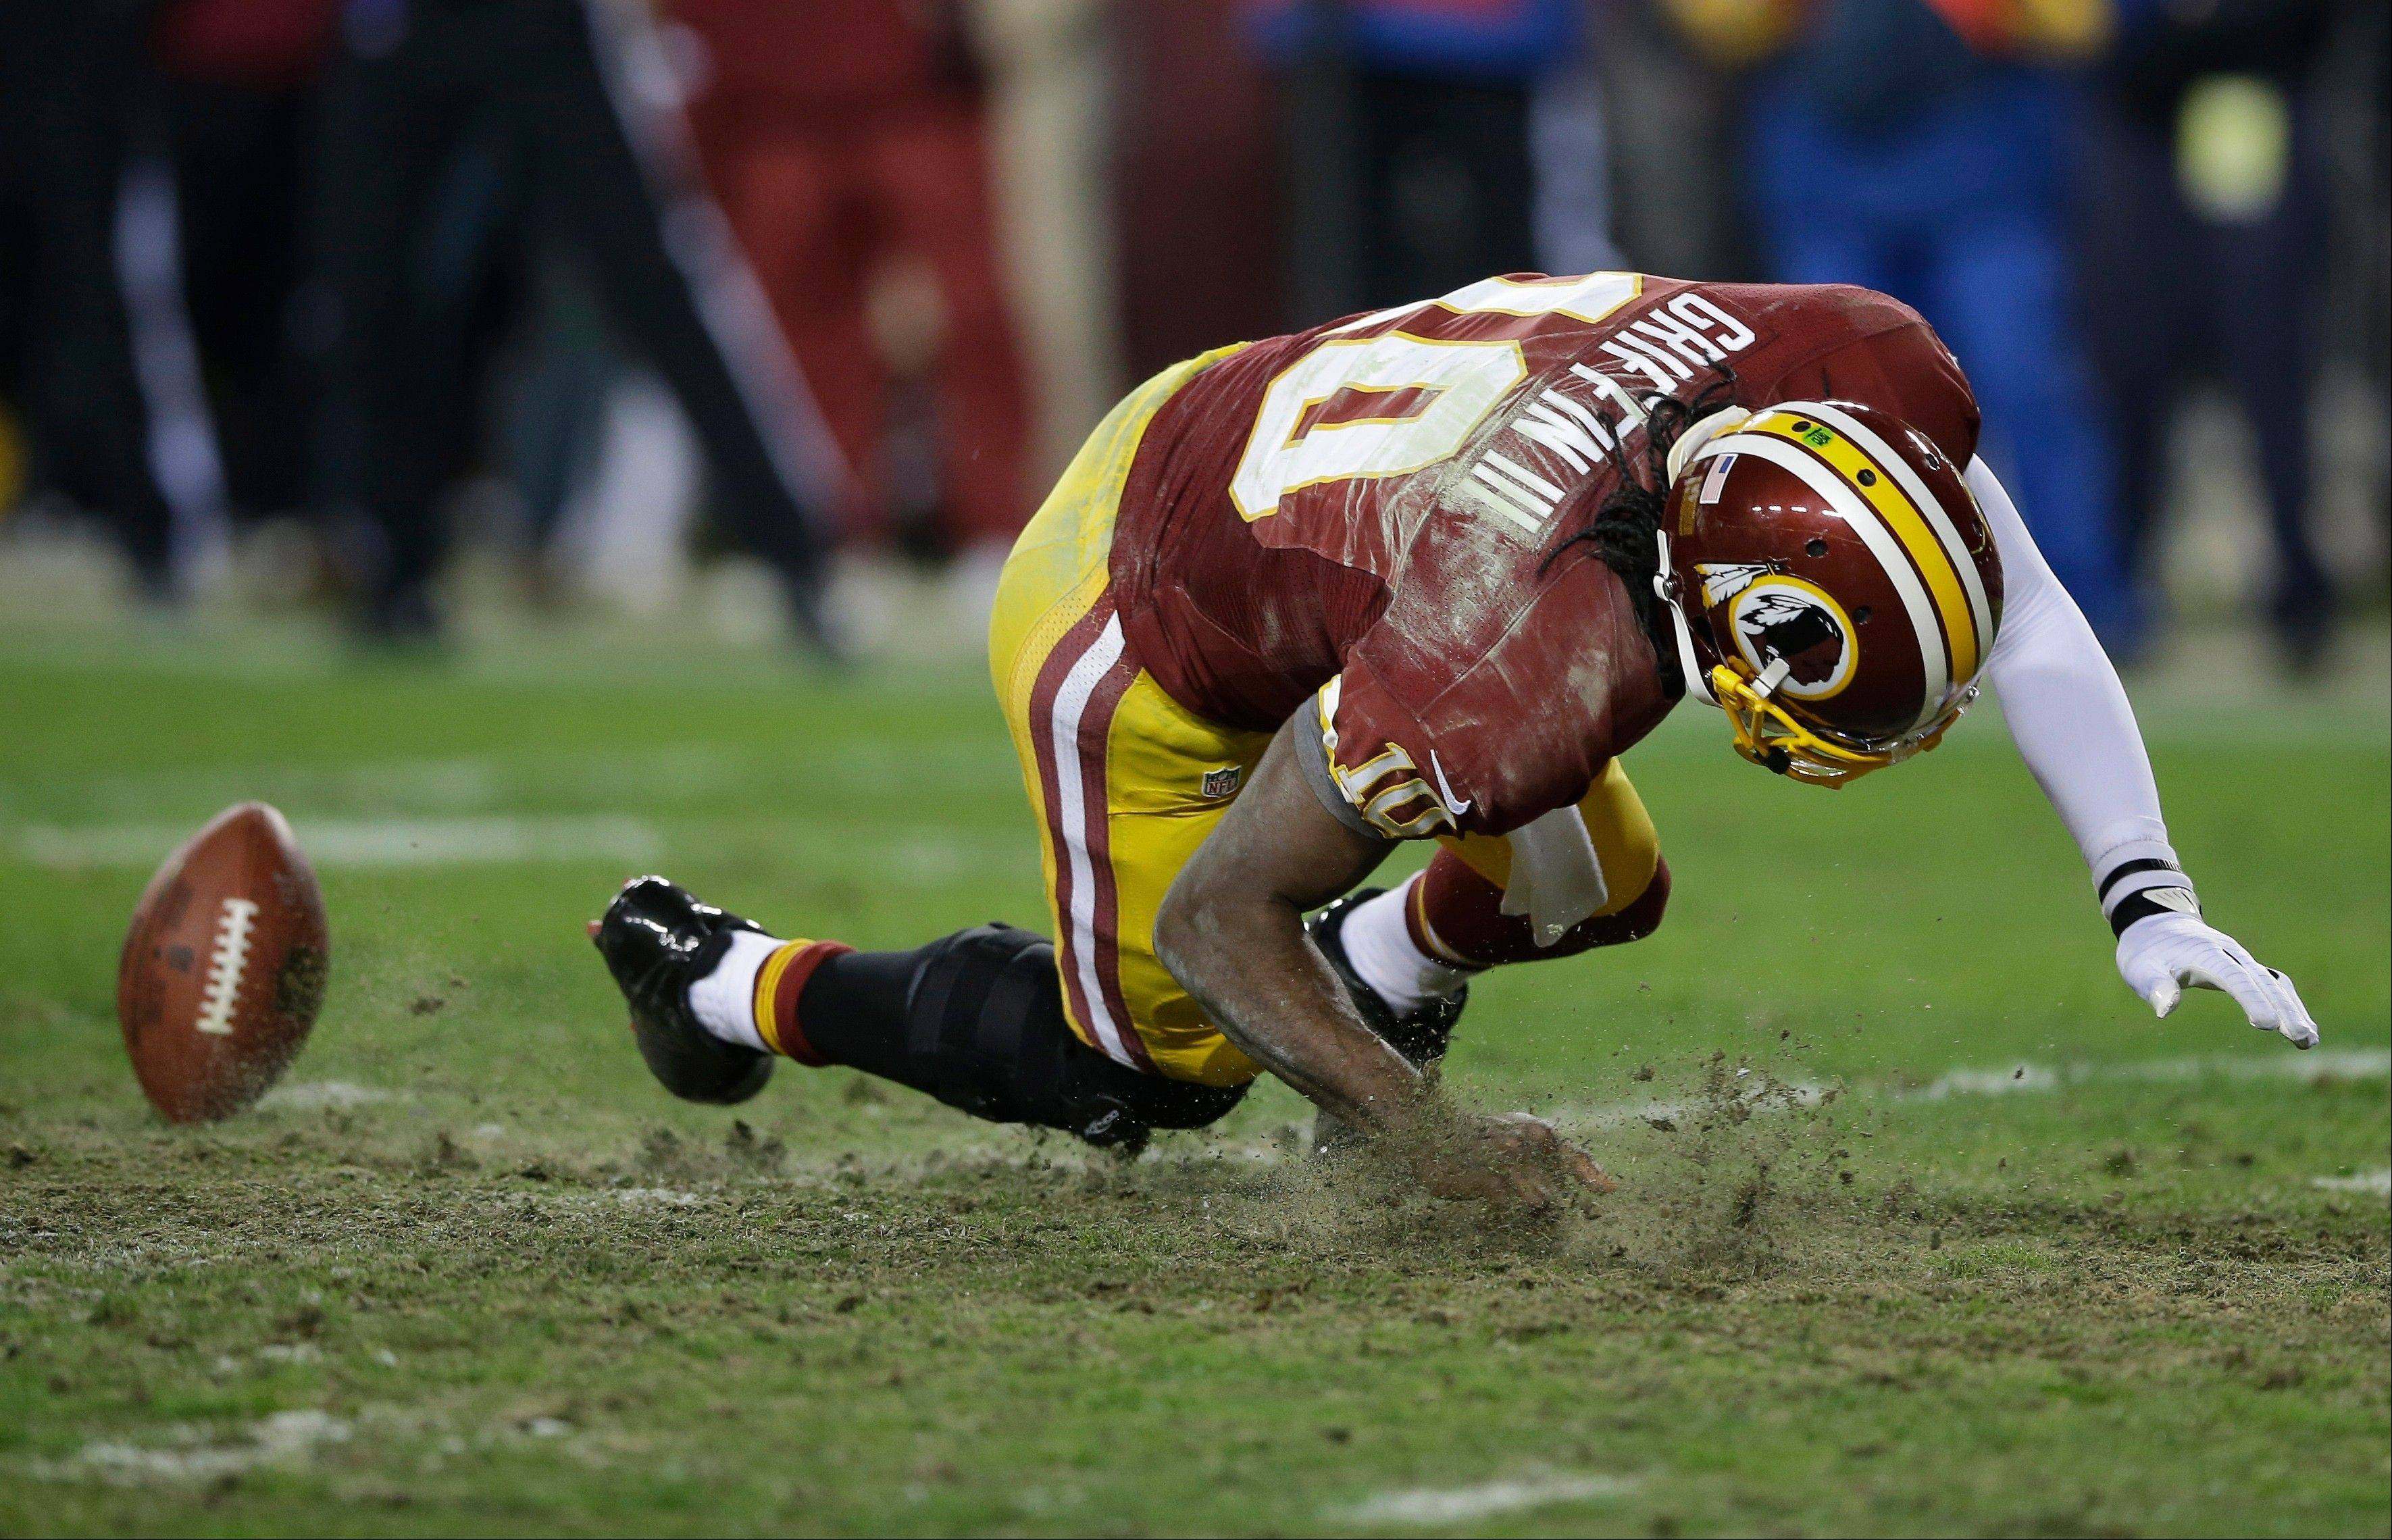 Washington Redskins quarterback Robert Griffin III falls after twisting his knee while reaching for a loose ball during the second half of an NFL wild card playoff football game against the Seattle Seahawks in Landover, Md., Sunday, Jan. 6, 2013.